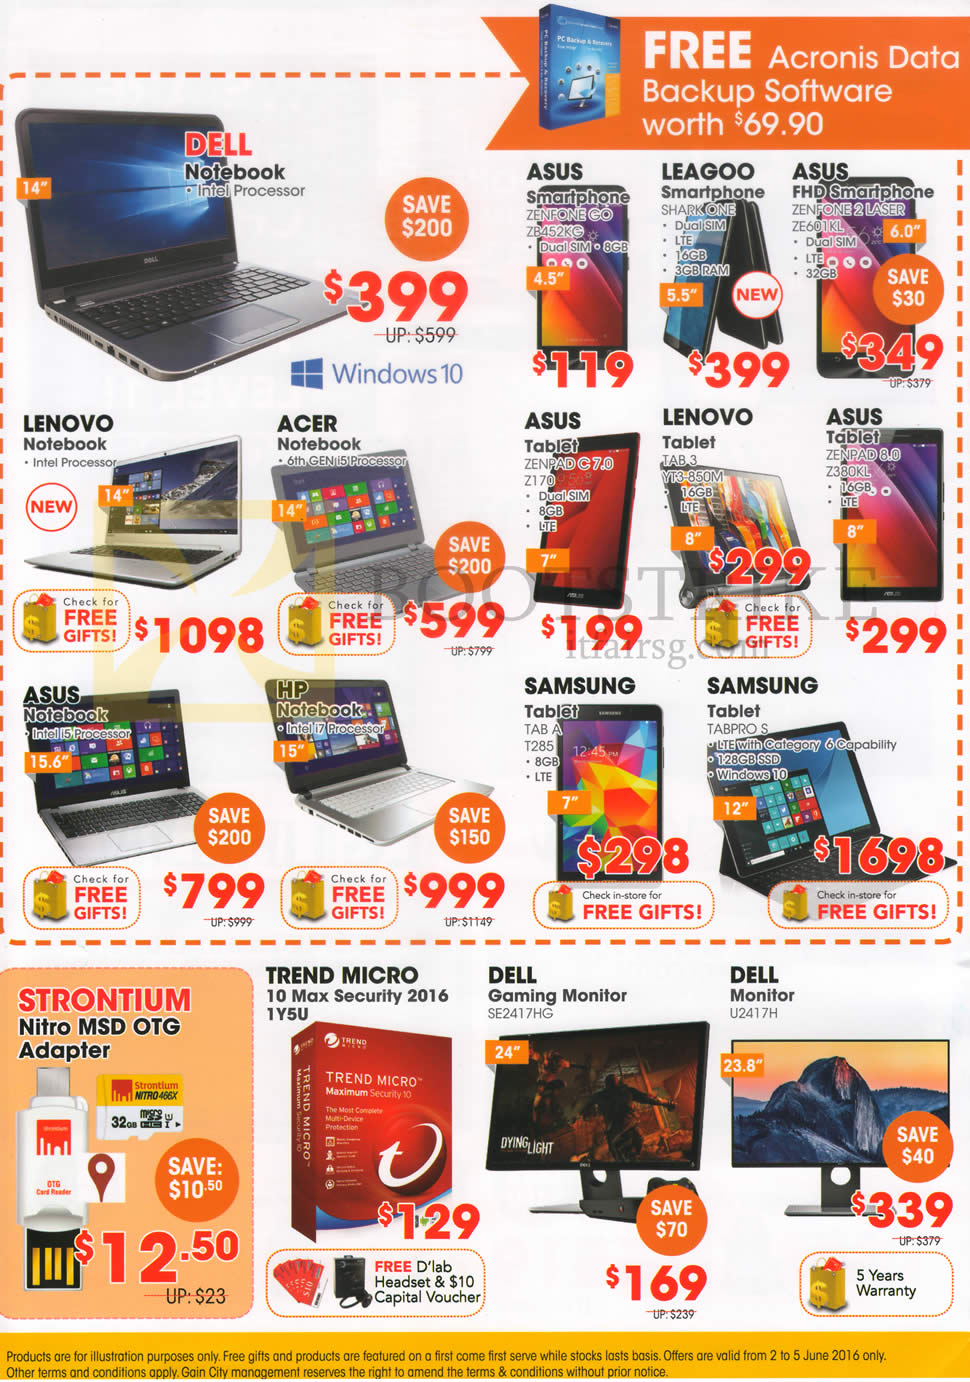 PC SHOW 2016 price list image brochure of Gain City Dell Notebooks, Tablets, Monitors, Software, Mobile Phones, Asus, Leagoo, Lenovo, Acer, Samsung, HP, Trend Micro, Strontium Adapter